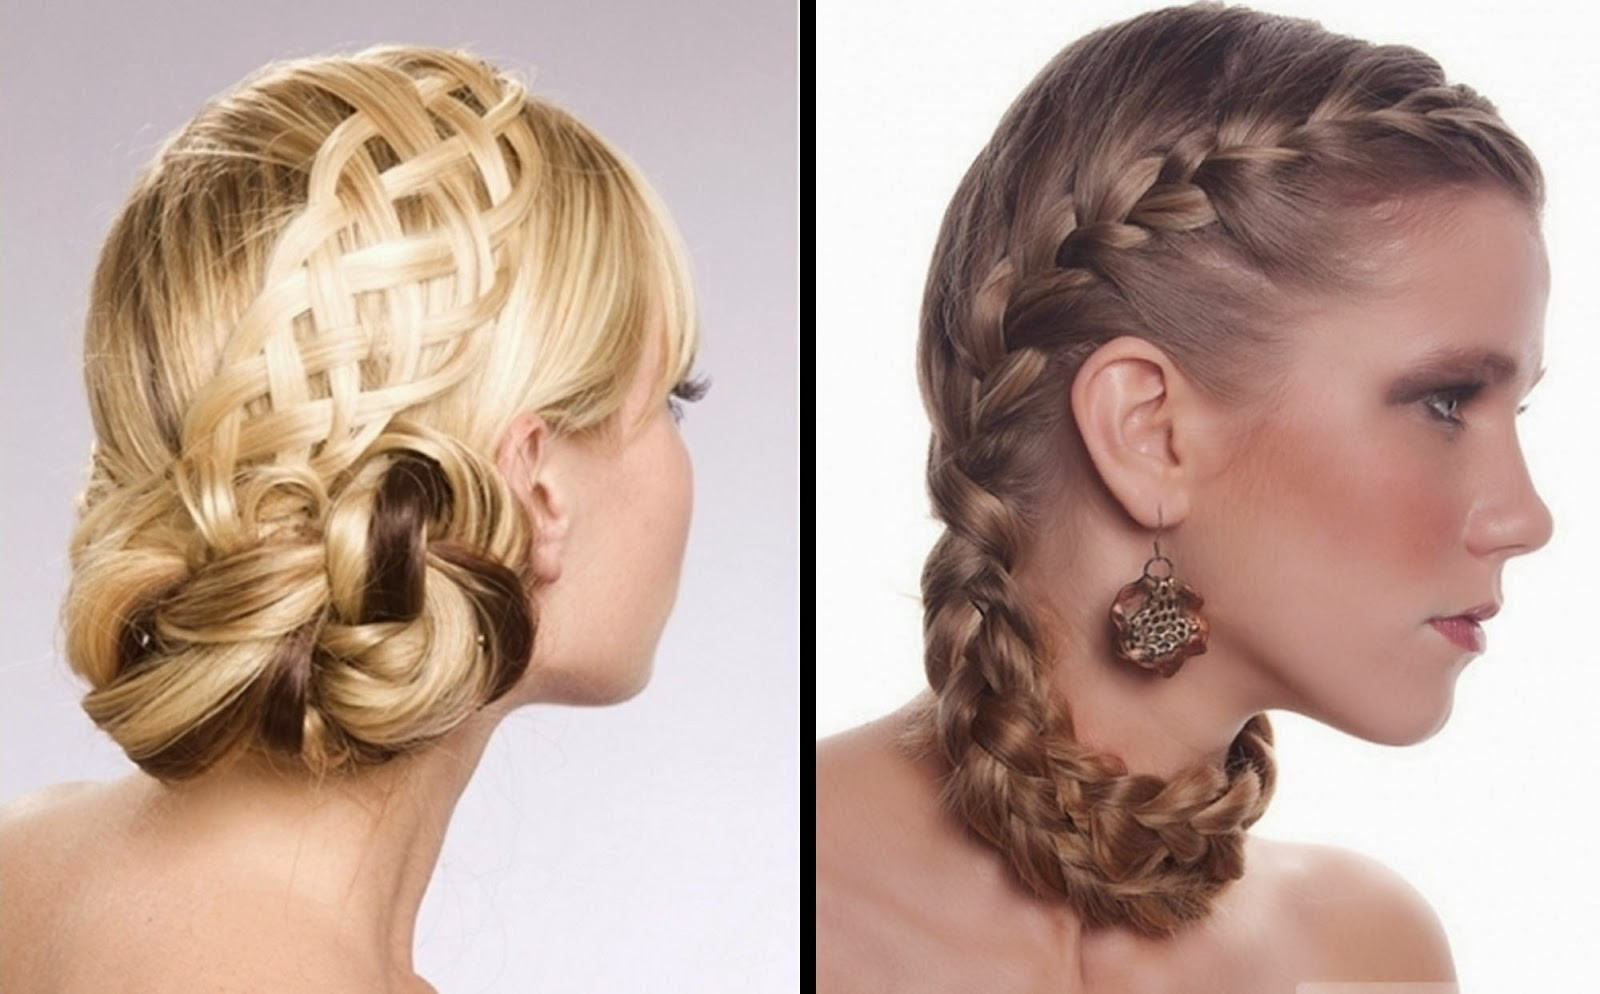 The Top 20 Ideas About Cute Hairstyles For Prom – Home Inspiration With Regard To Most Up To Date Twisted Prom Hairstyles Over One Shoulder (View 11 of 20)